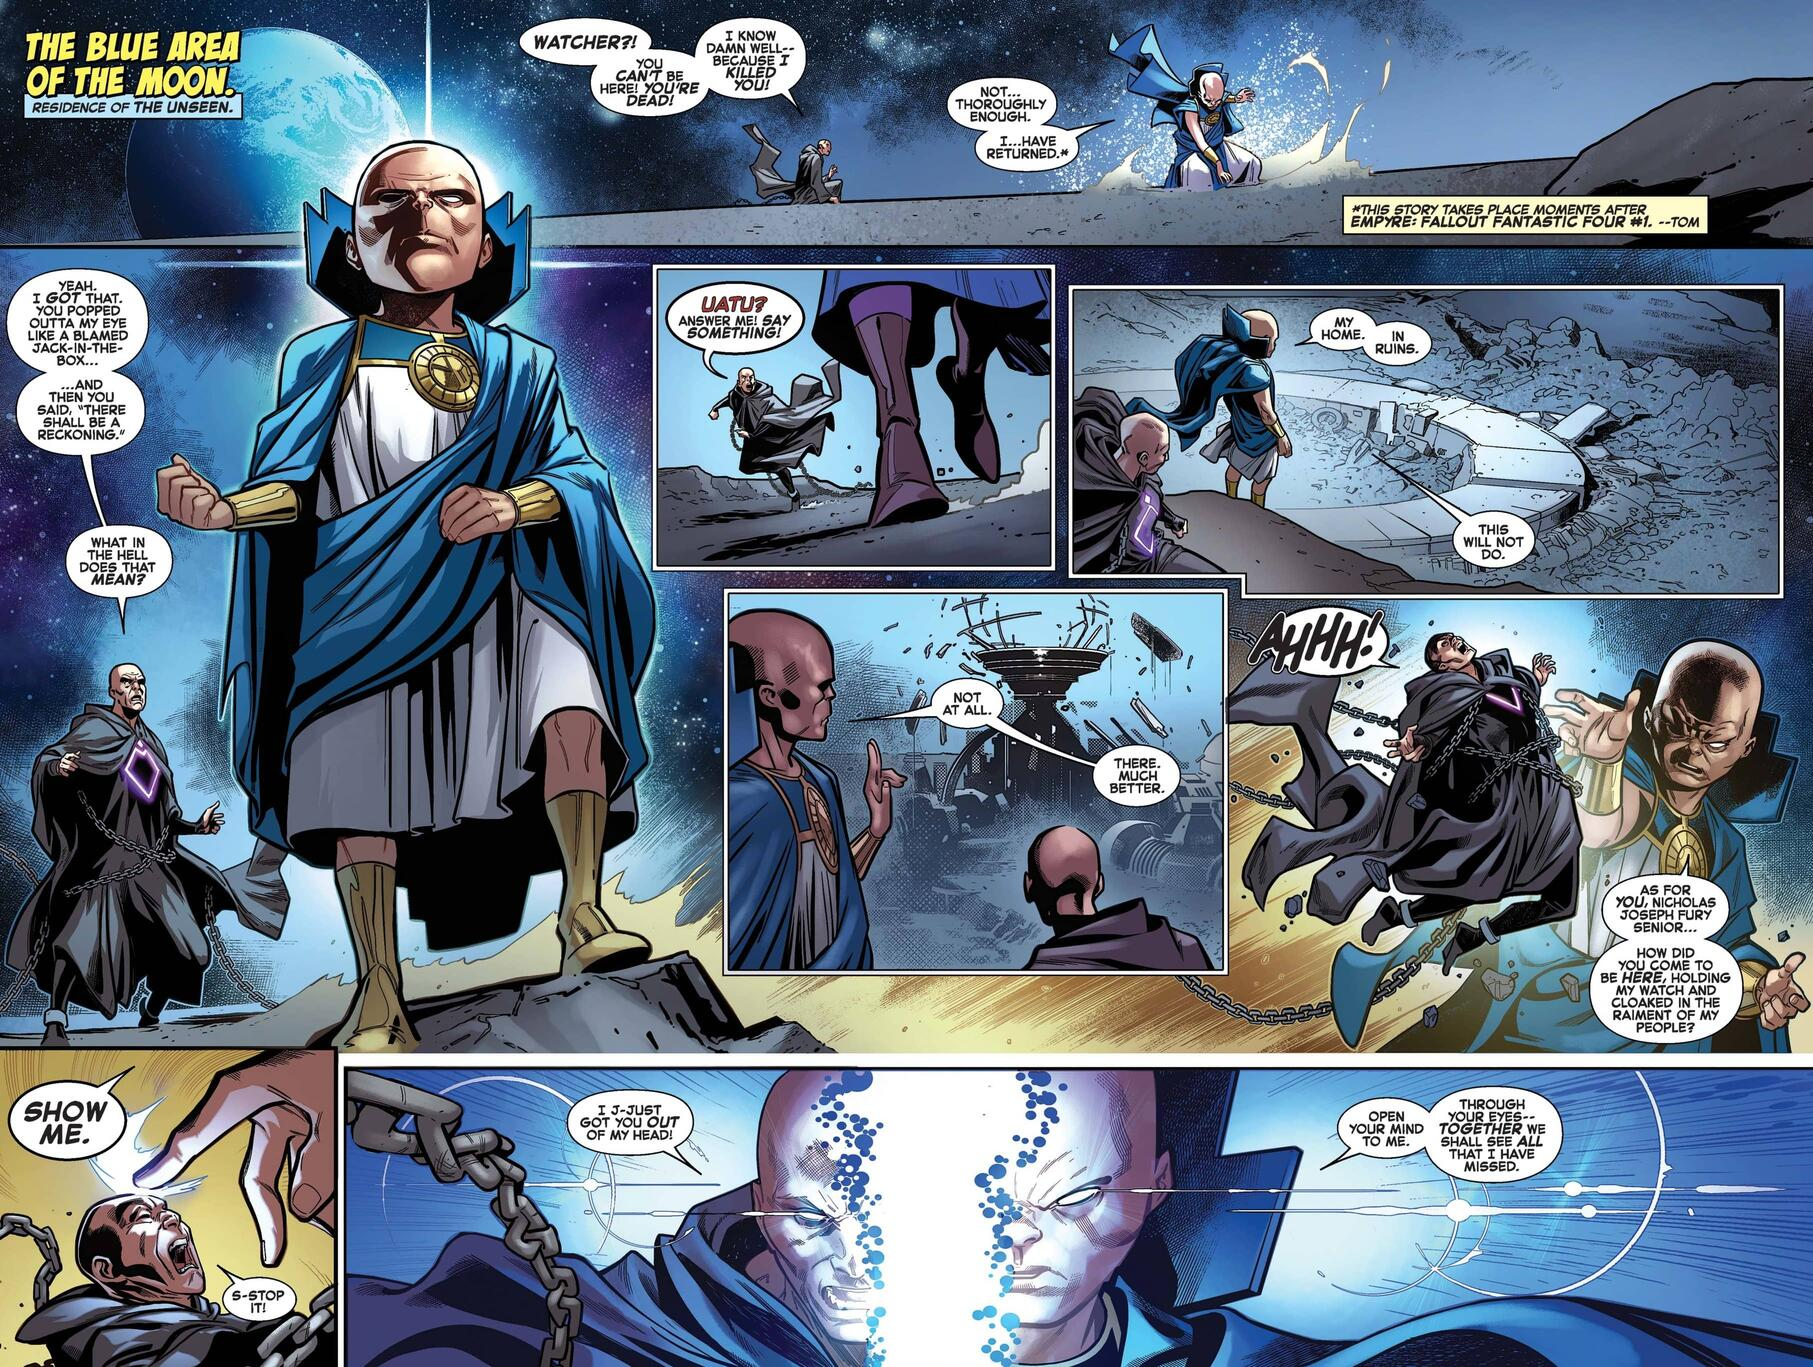 Uatu is resurrected and appoints Nick Fury in FANTASTIC FOUR (2018) #25.